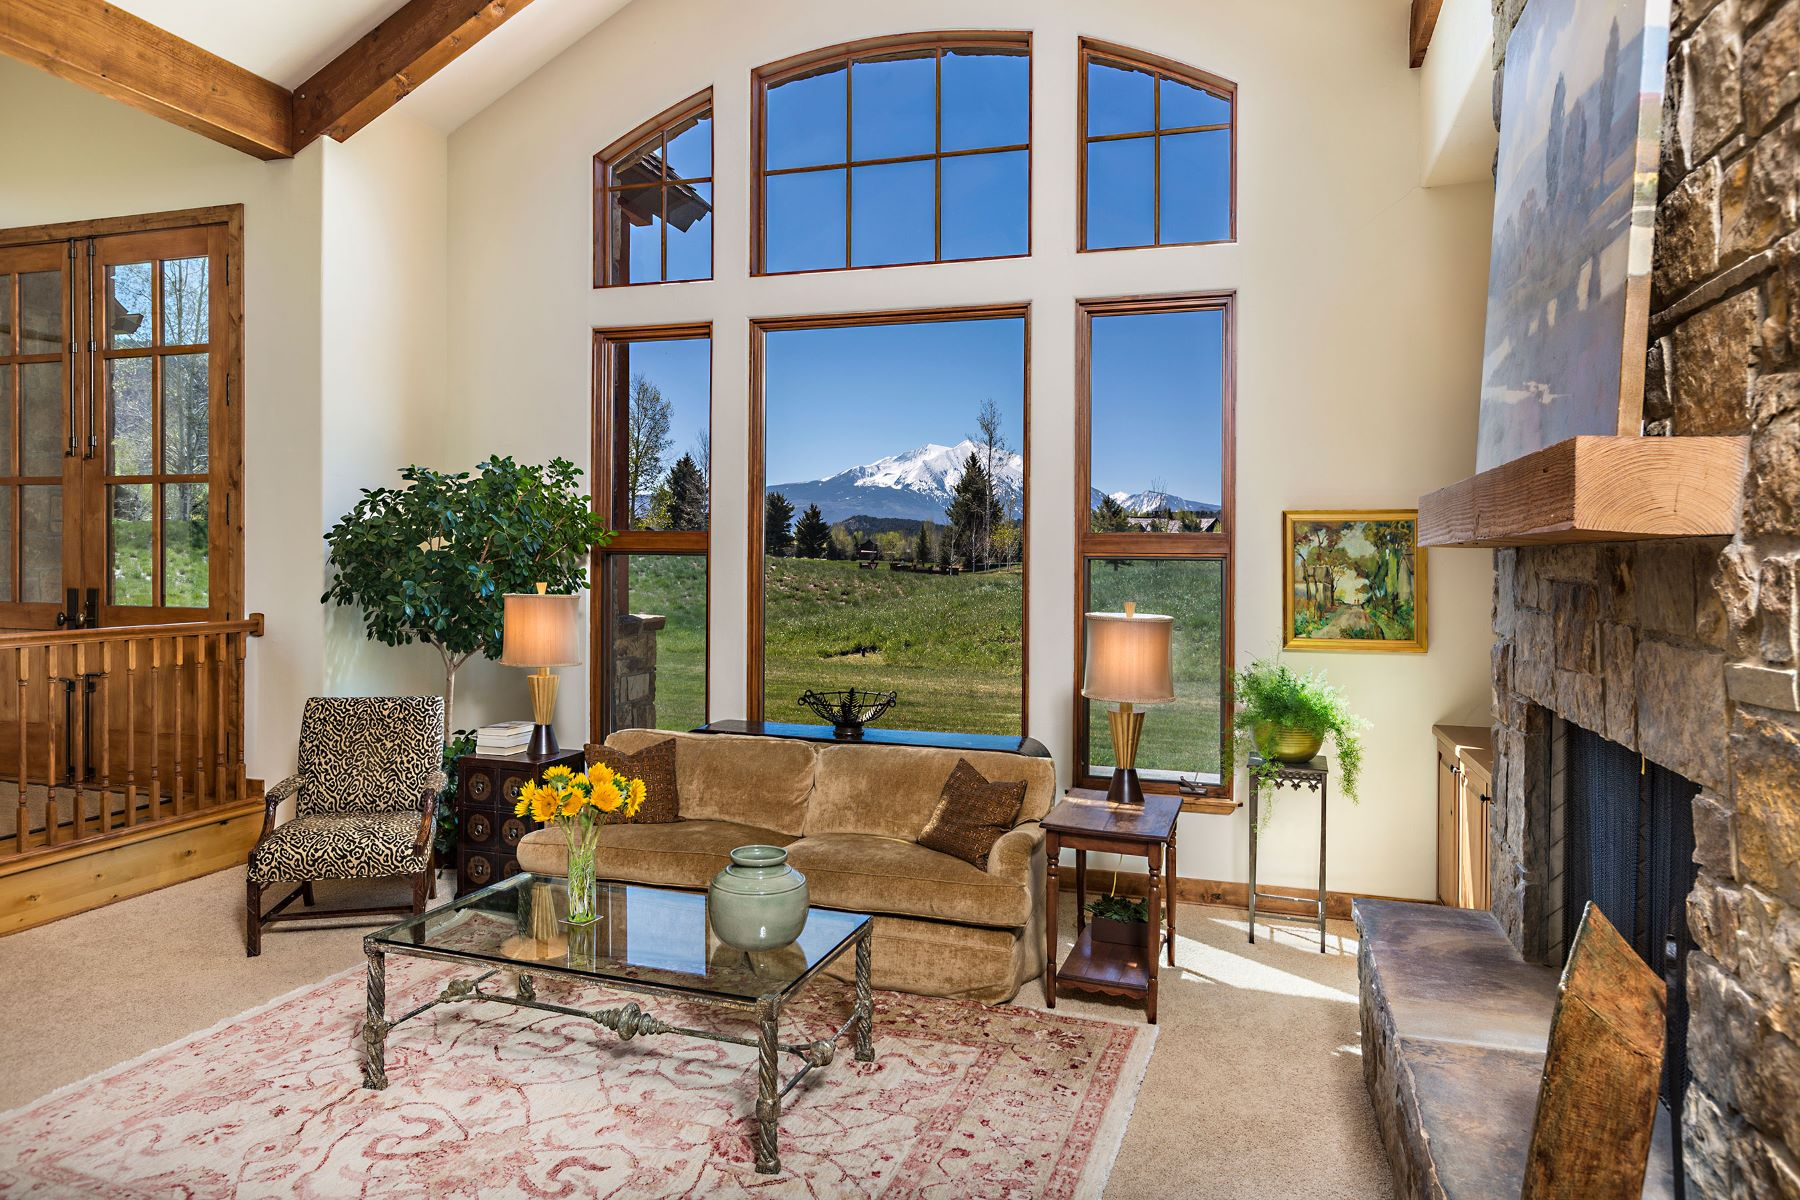 Single Family Home for Sale at Gracious Single Level Living 18 Leonis Lane Carbondale, Colorado, 81623 United States